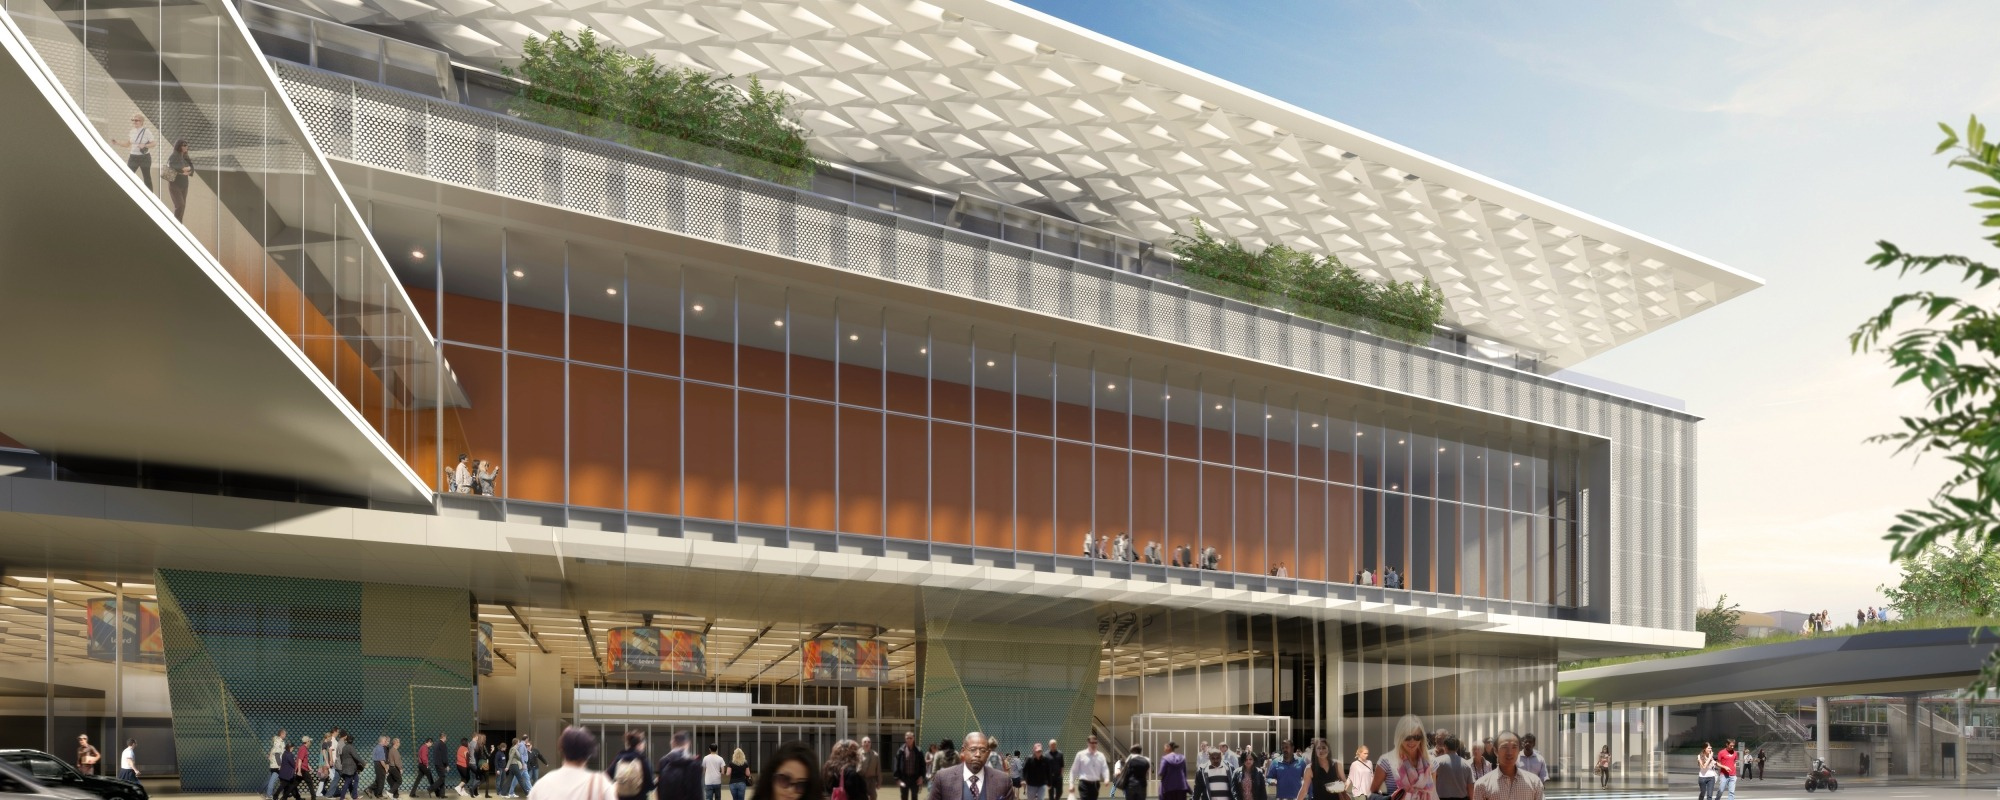 Moscone Expansion Project